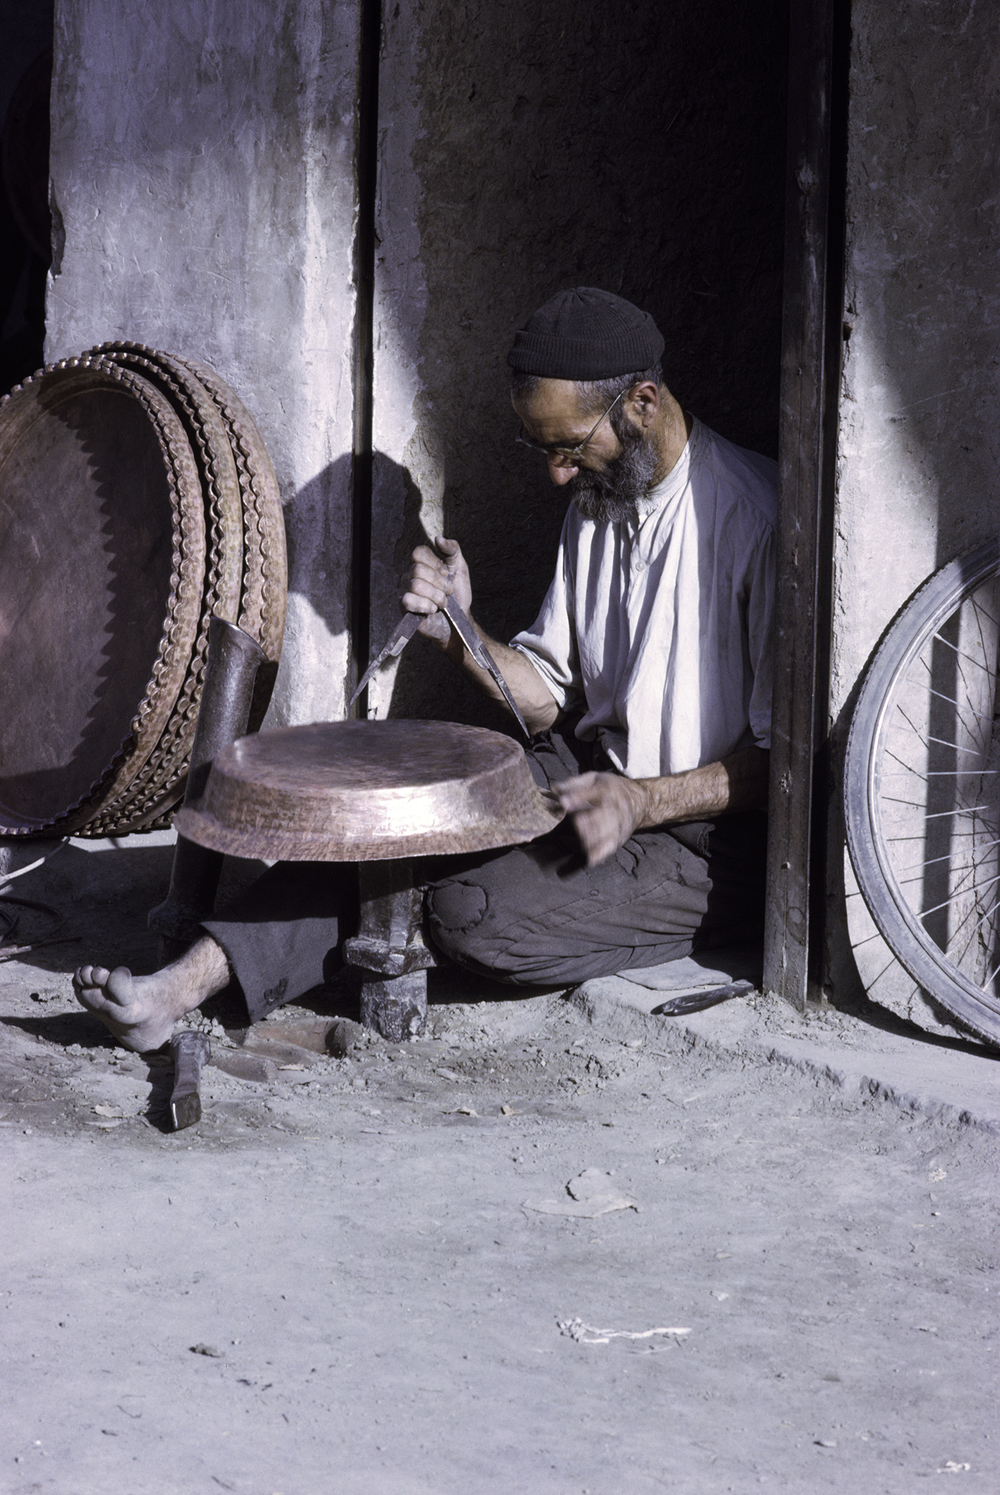 Coppersmith at Work, Iran 19767